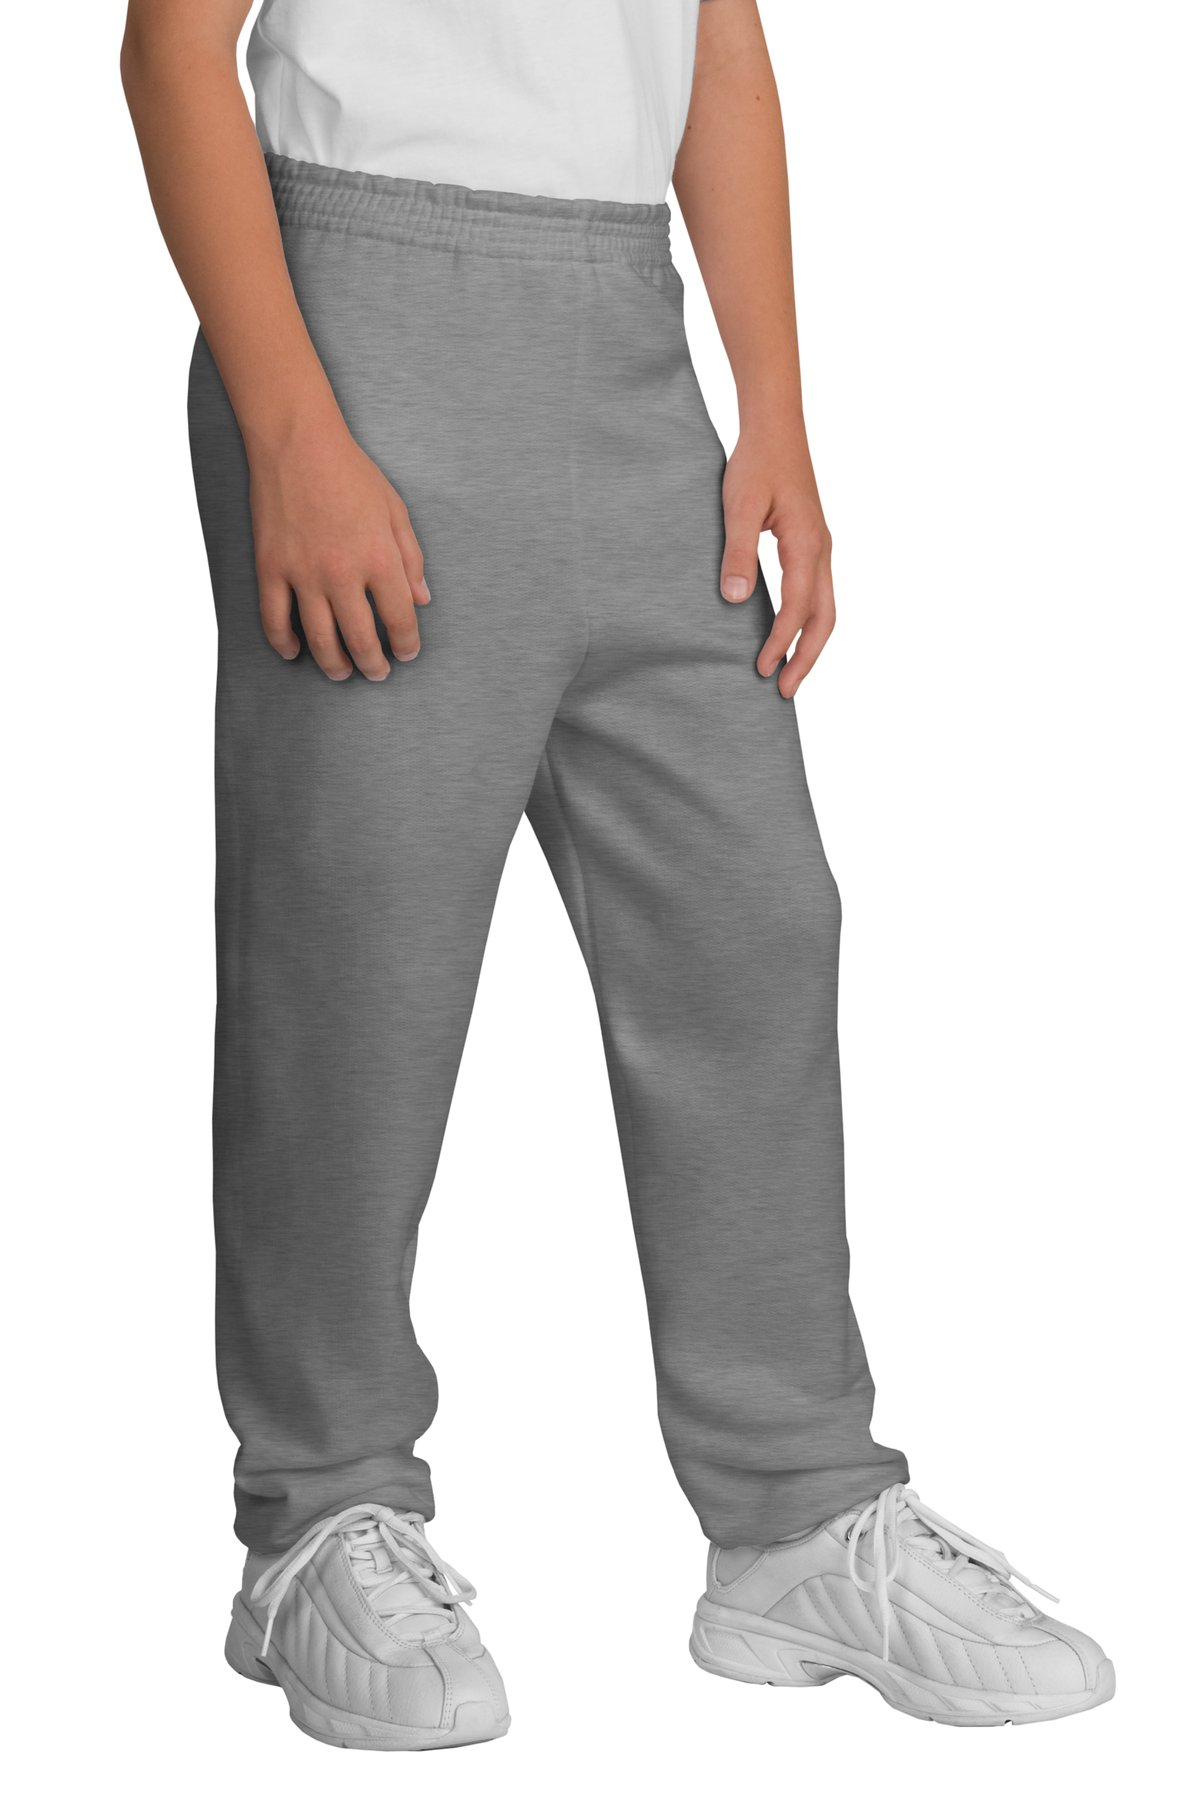 Port & Company ®  - Youth Core Fleece Sweatpant.  PC90YP - Athletic Heather